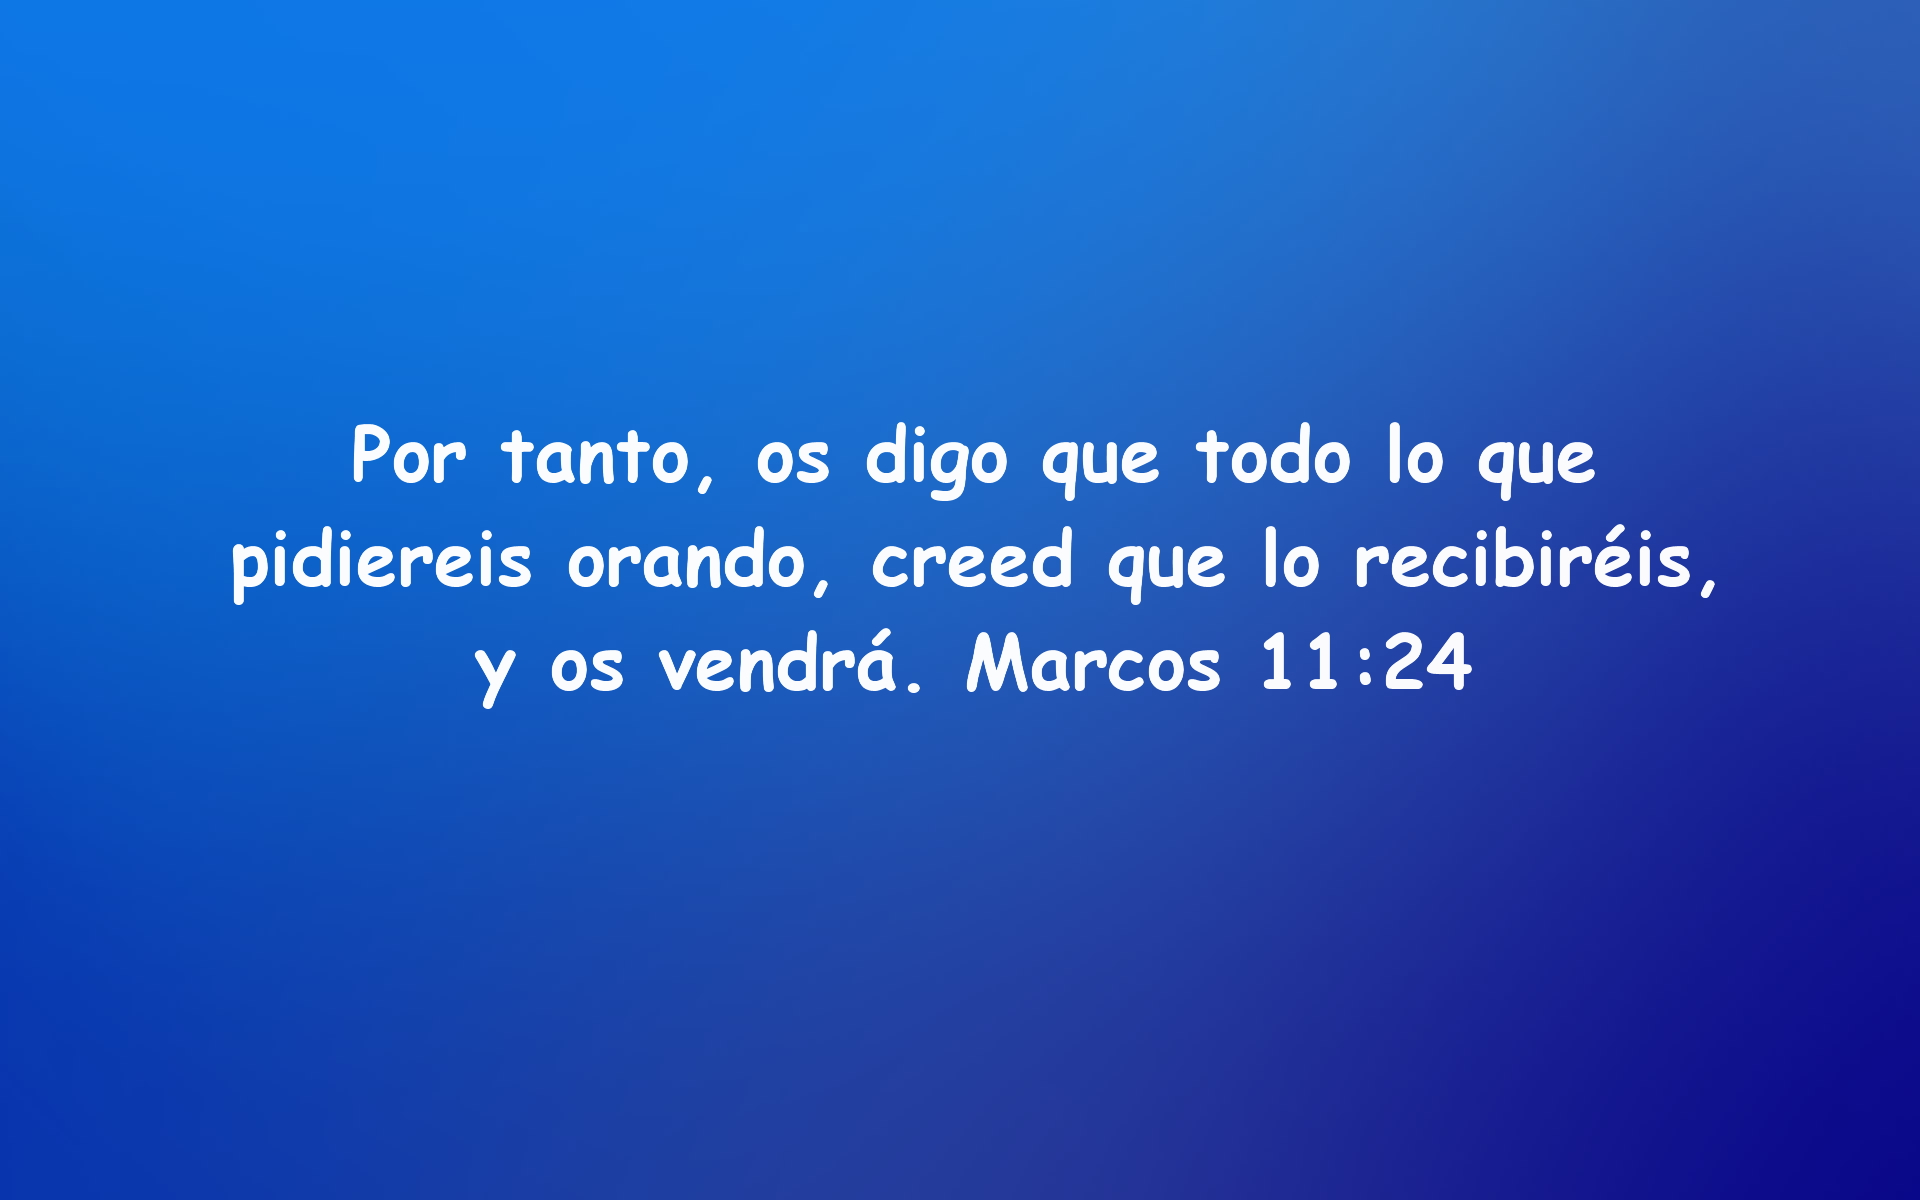 Wallpapers cristianos Marcos 1124 1920x1200